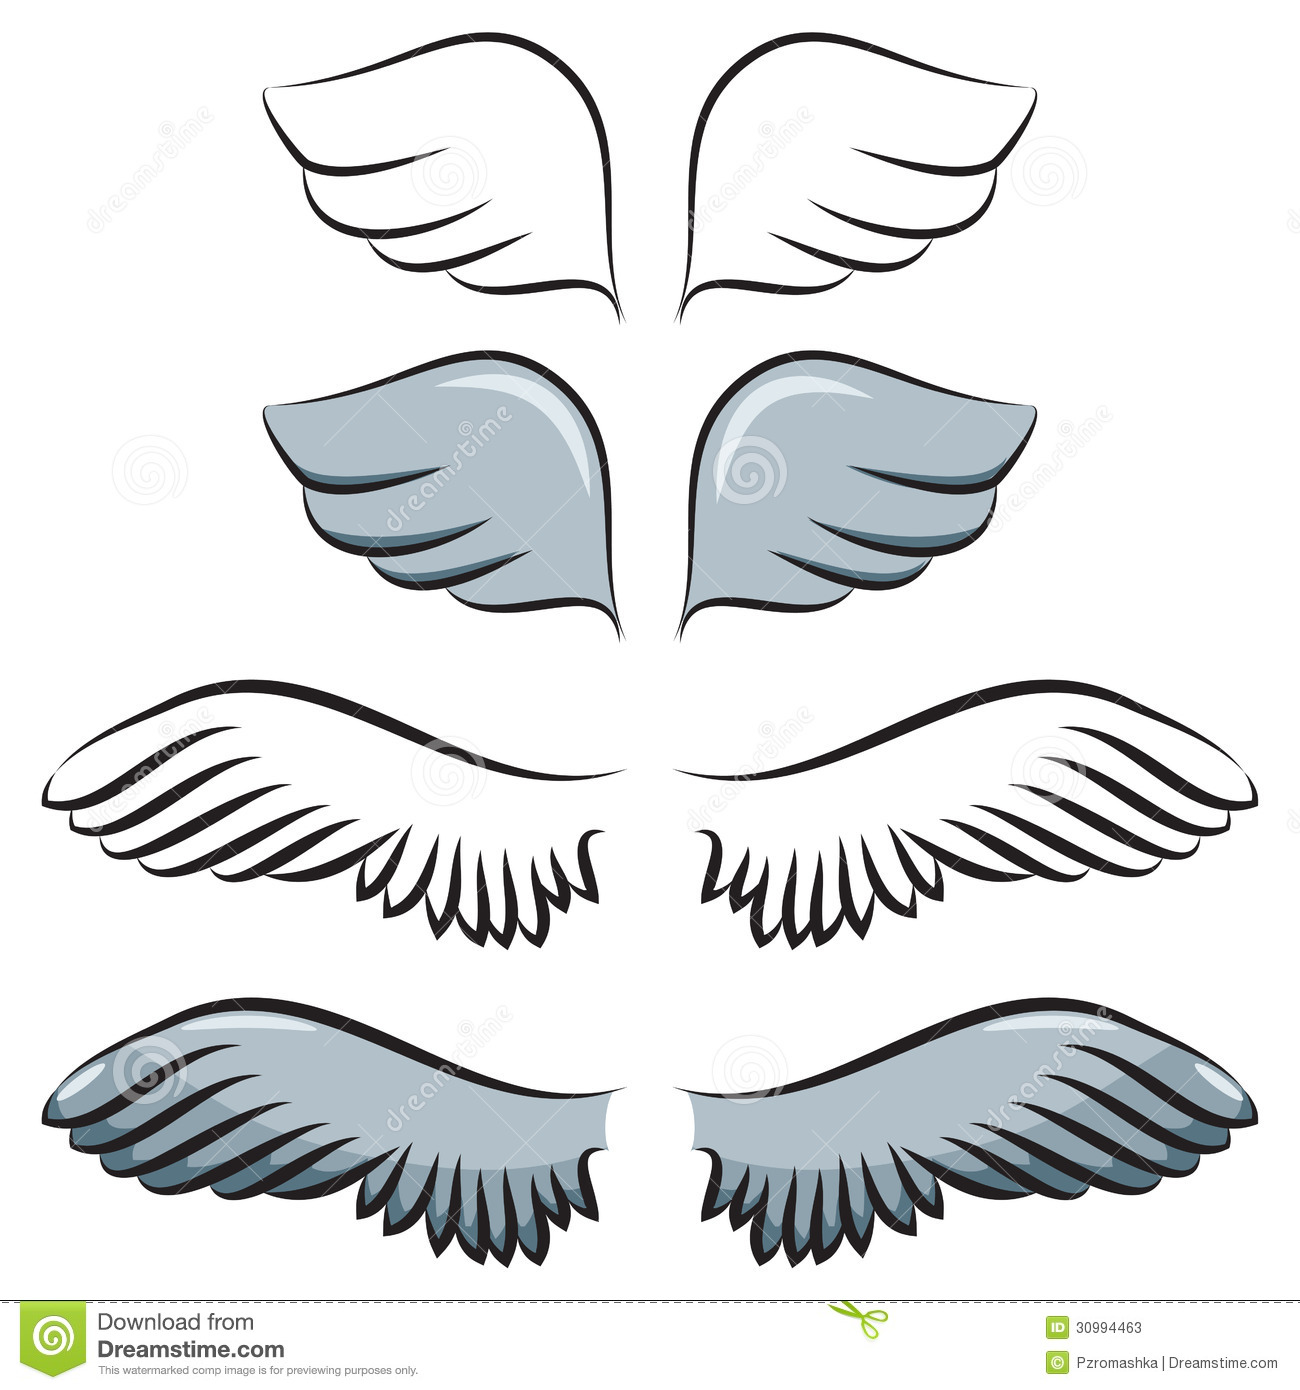 Wings clipart cartoon Wings Wings Simple Clipart Clipart